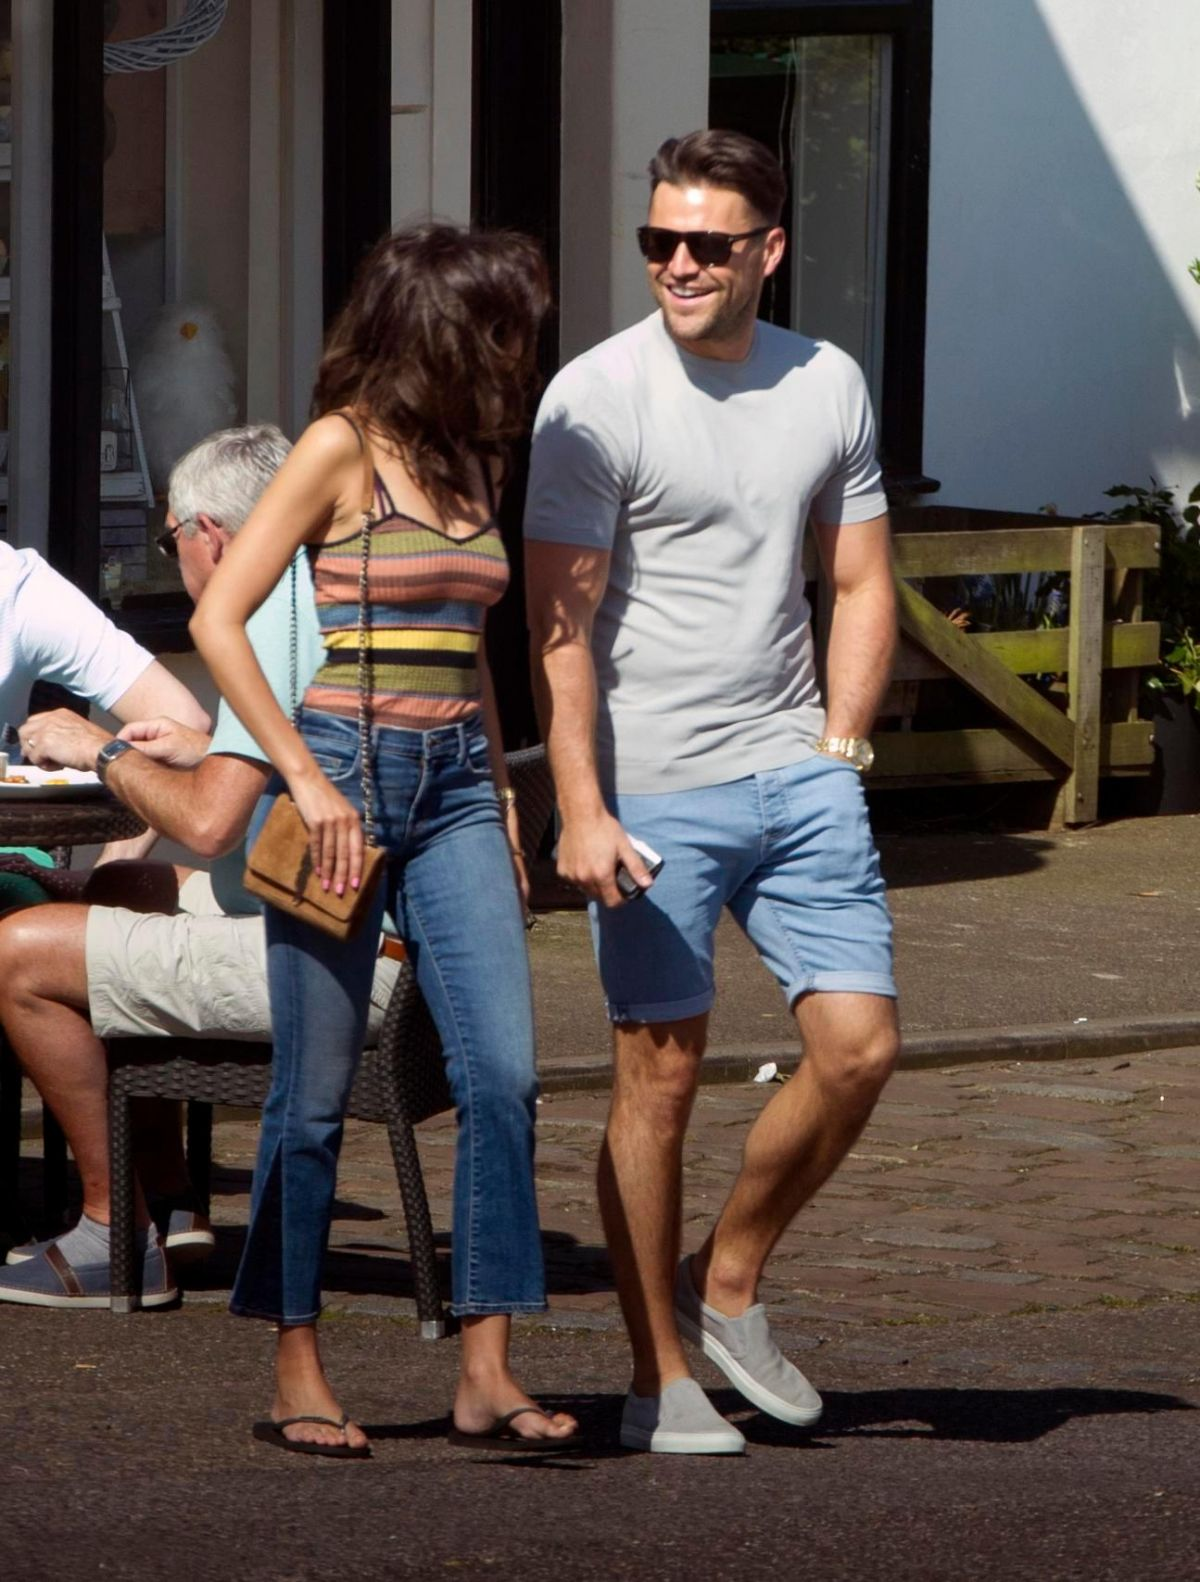 MICHELLE KEEGAN Out and About in Abridge 04/09/2017